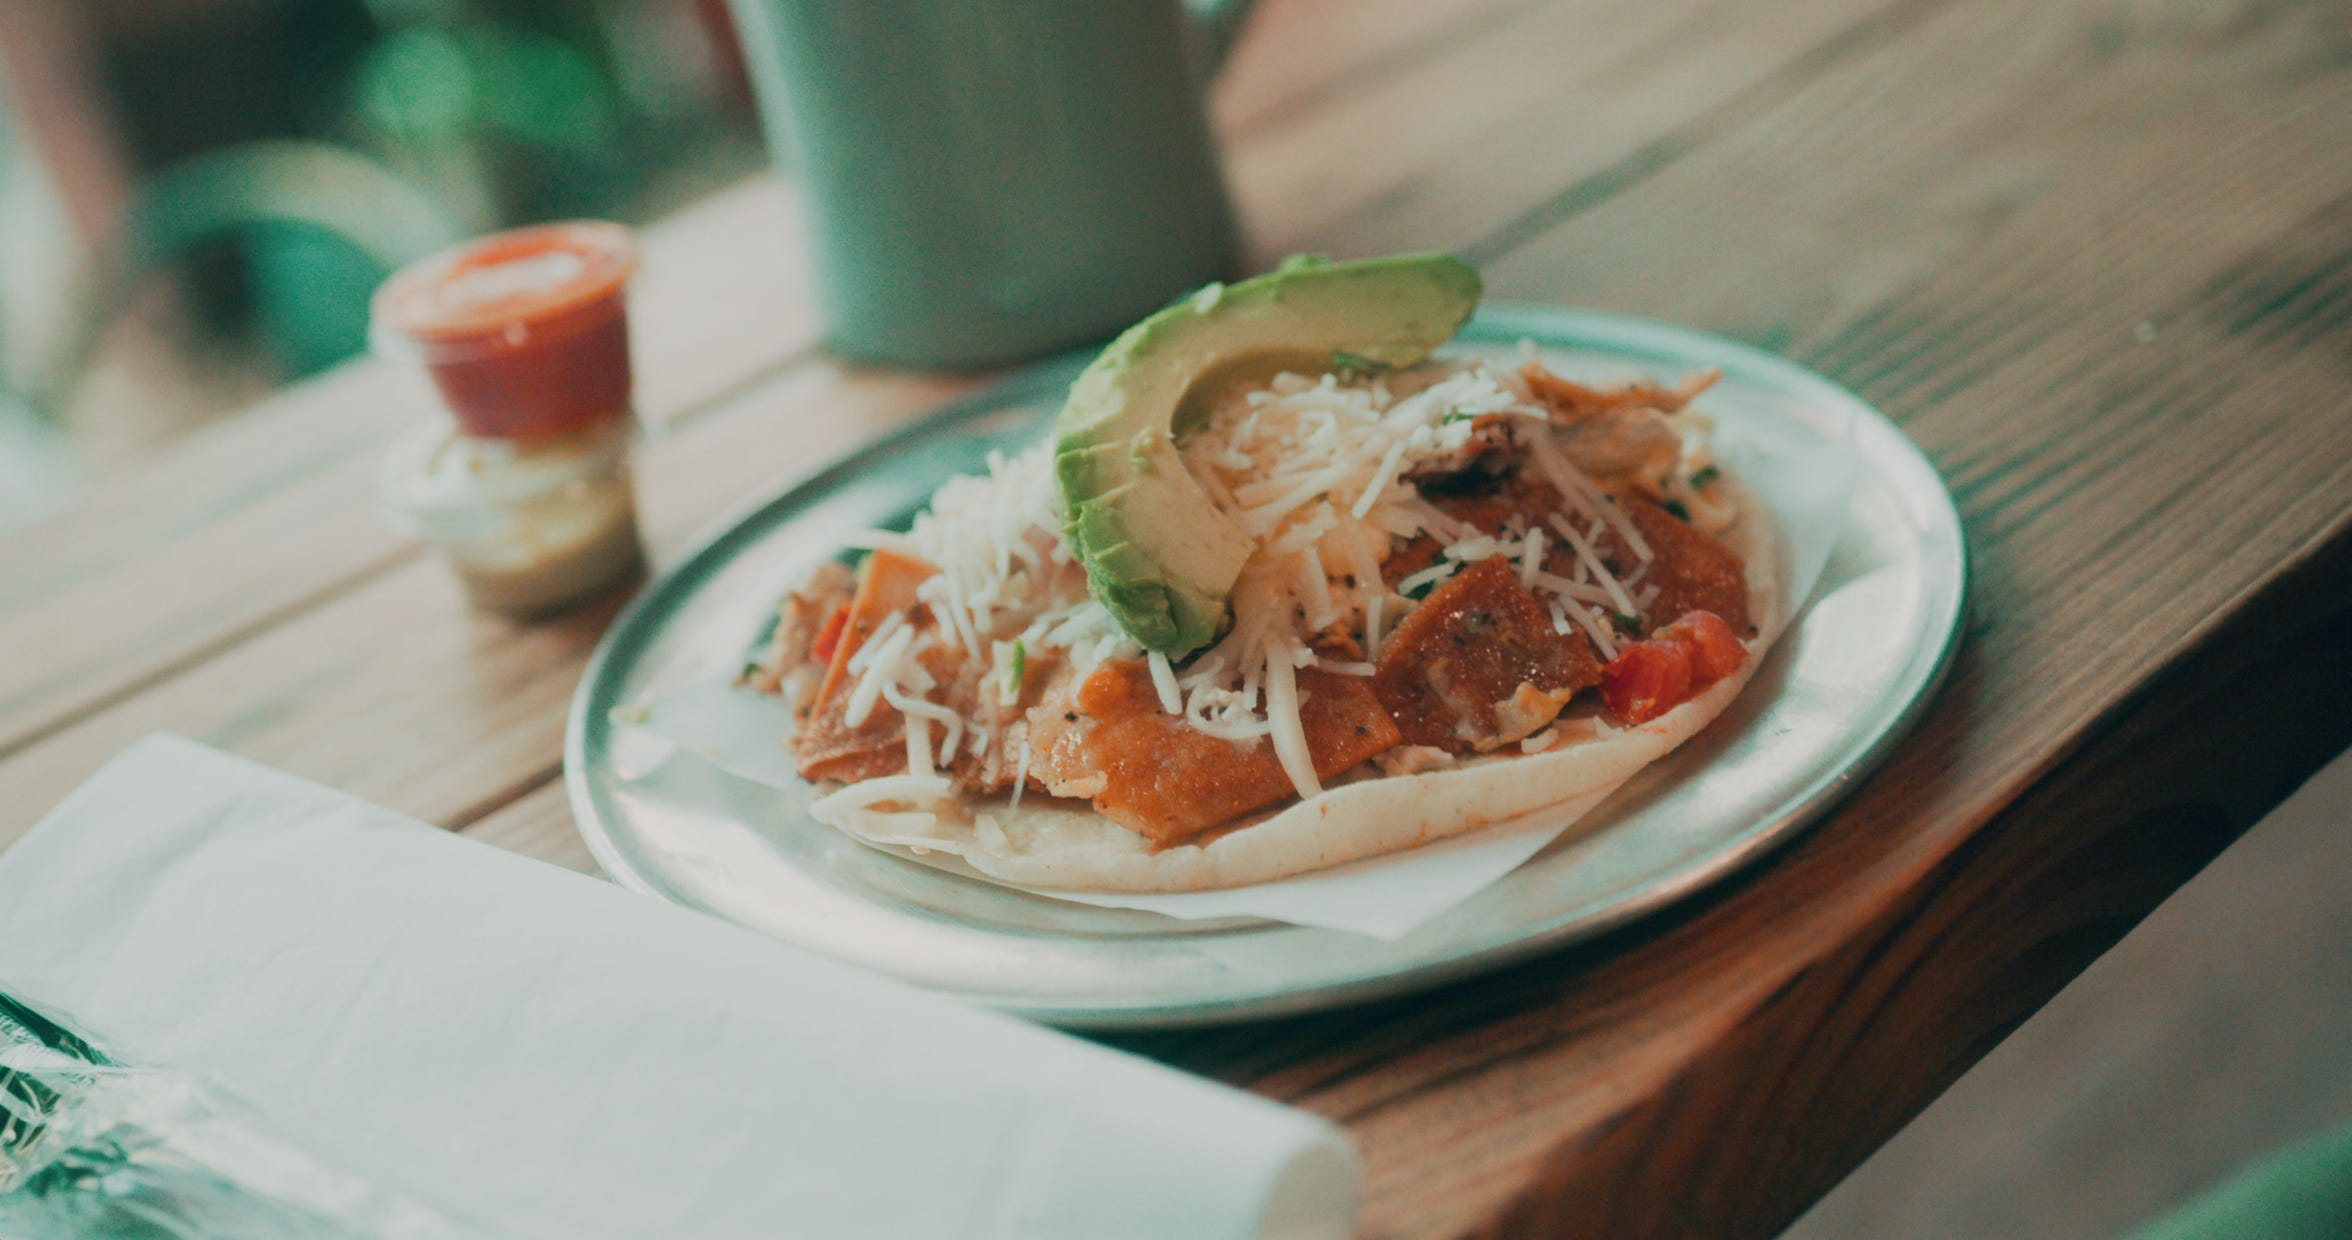 Veracruz All Natural is a must-stop for their Migas Originales breakfast tacos.